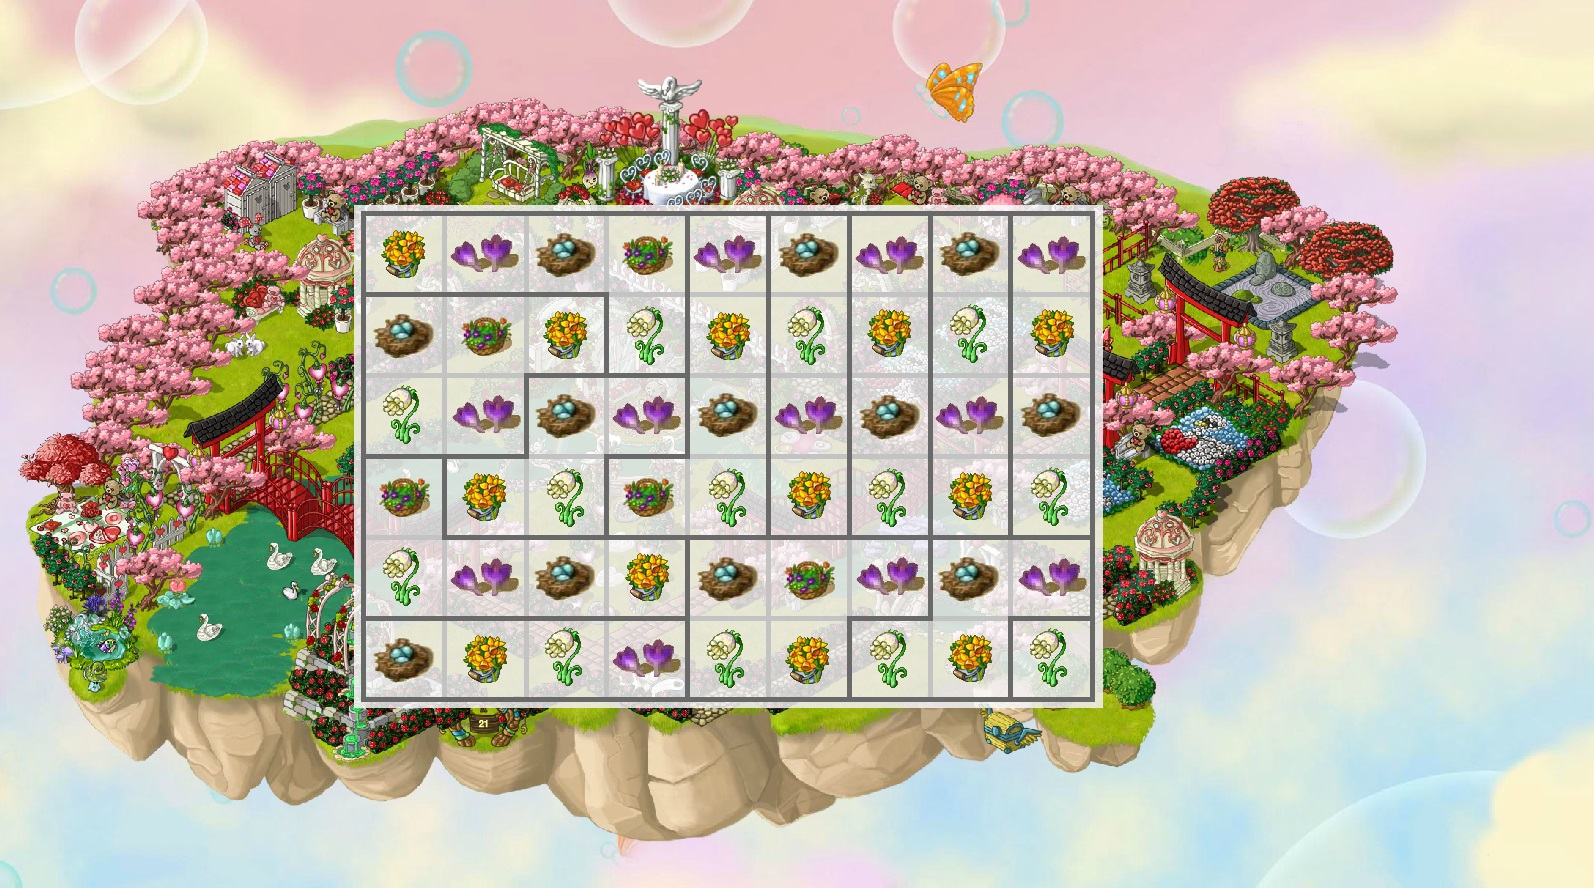 Name:  Gift Box Puzzler - Welcoming Spring 2019 - answer.jpg Views: 25 Size:  537.3 KB